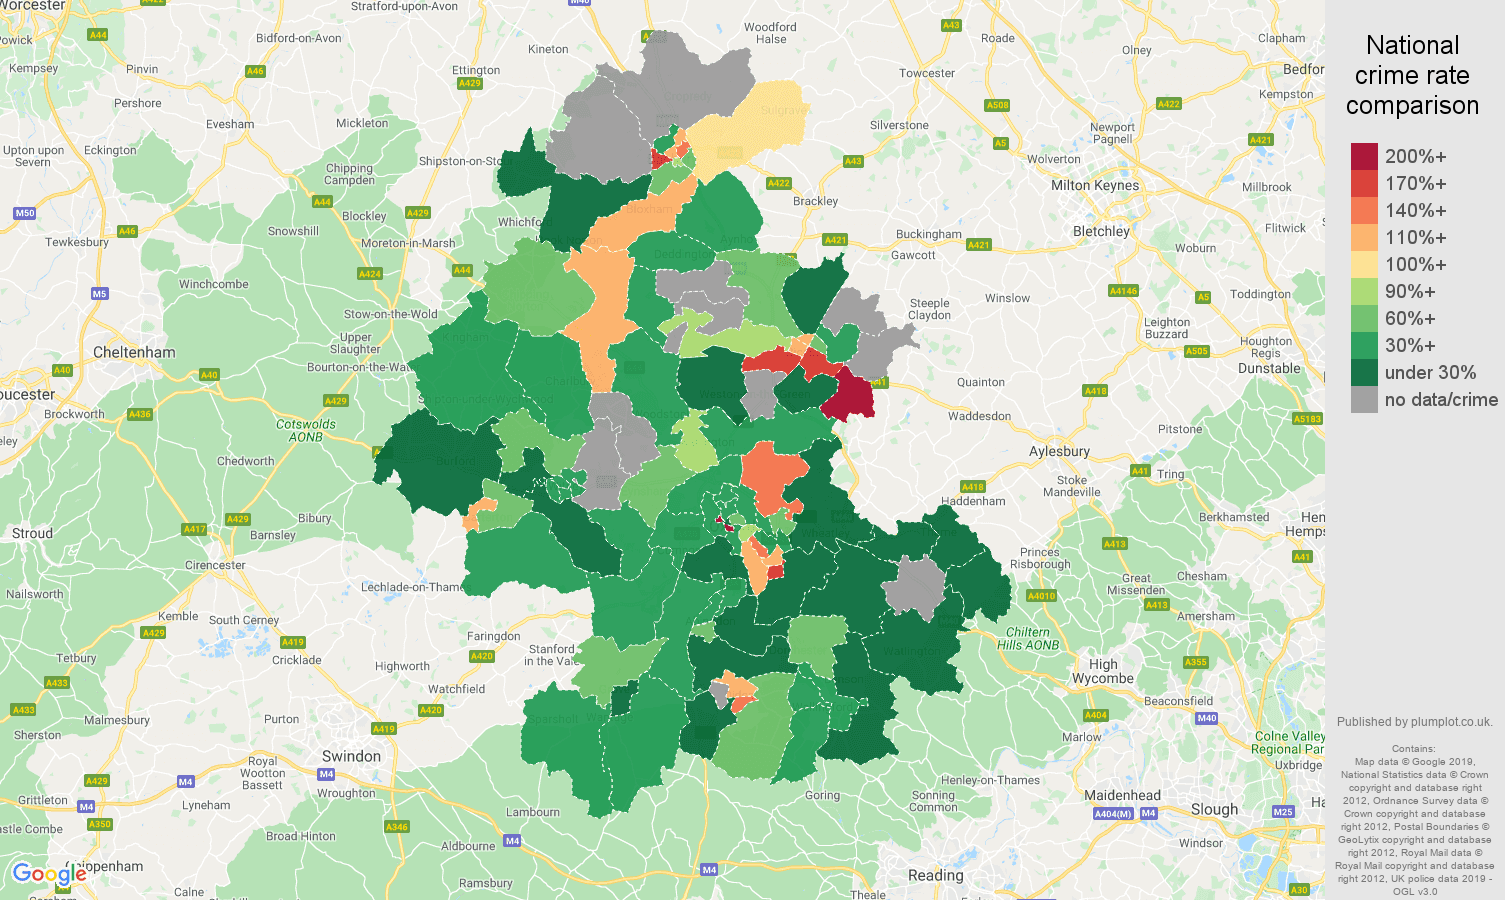 Oxford other crime rate comparison map